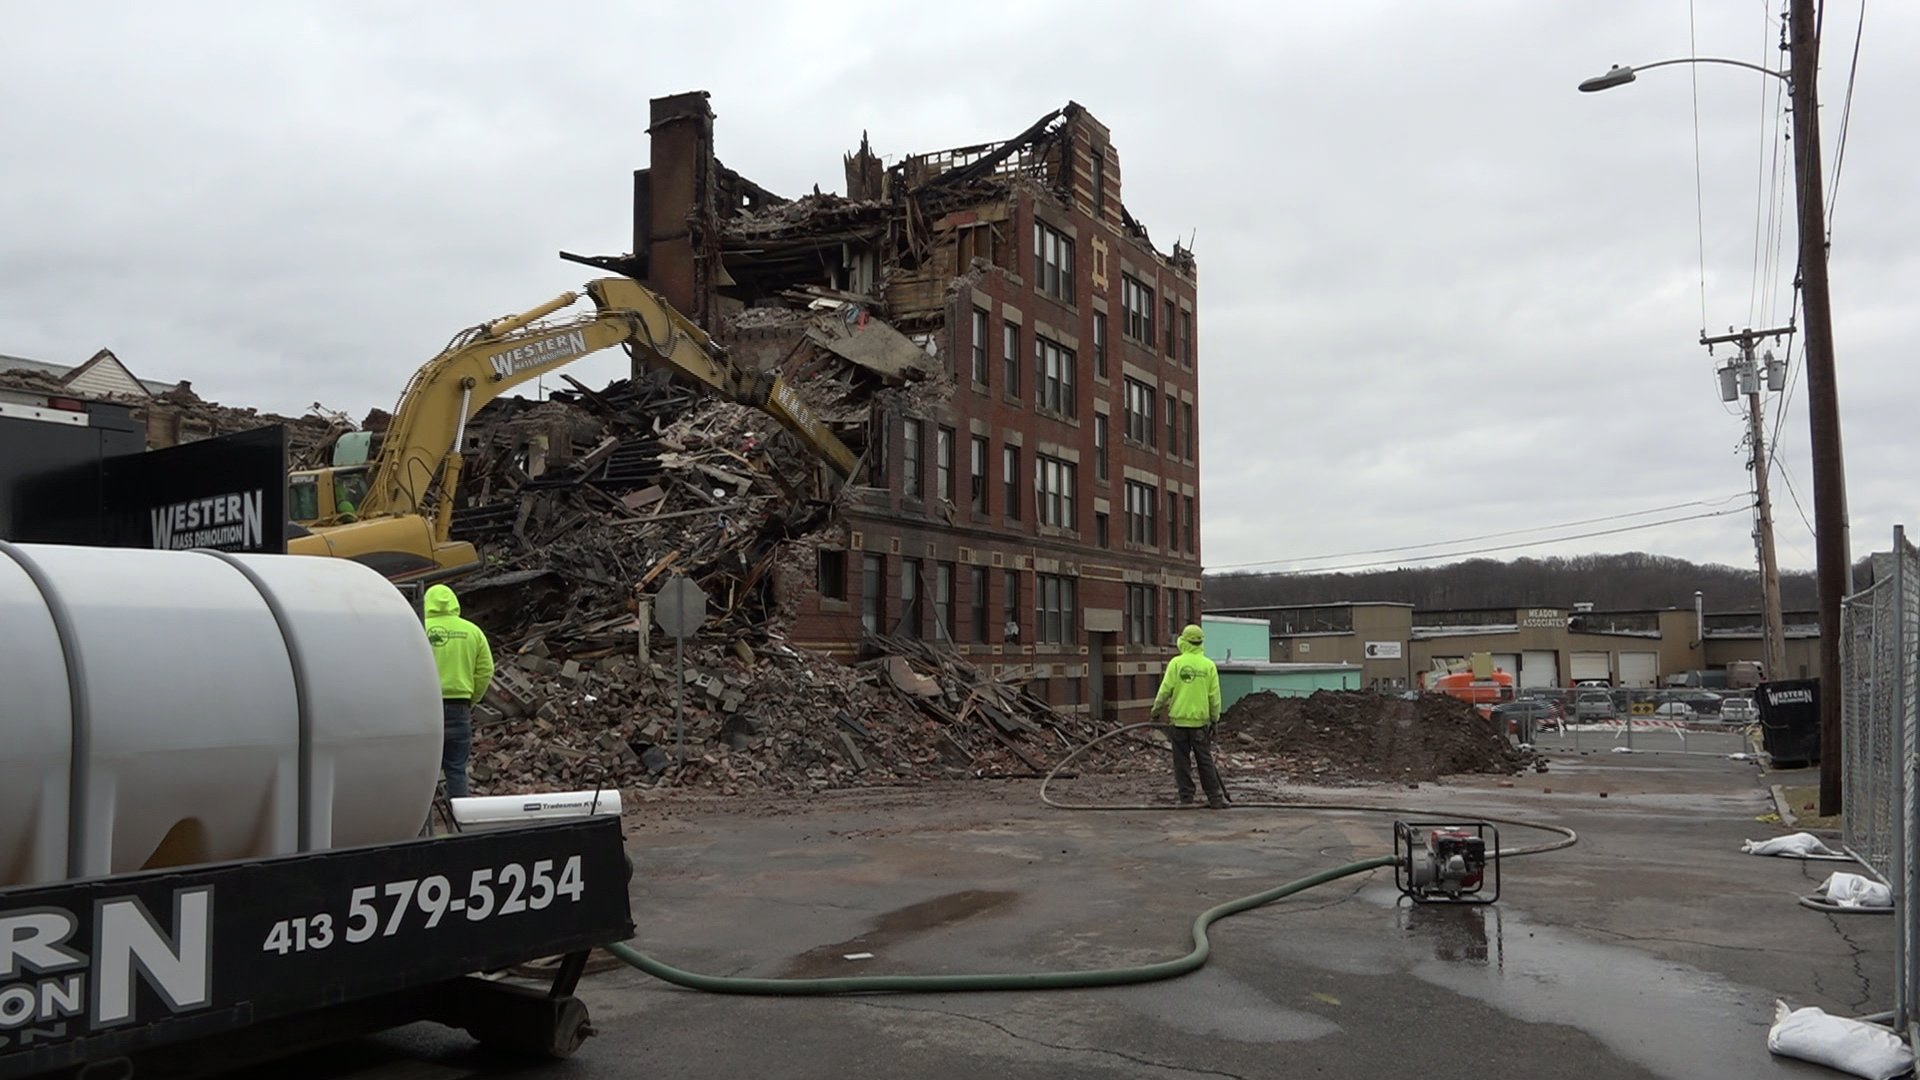 Residents & Mayor Alex Morse react to the January 1 multi-alarm fire in Holyoke, MA that destroyed an apartment building in the flats area of the city